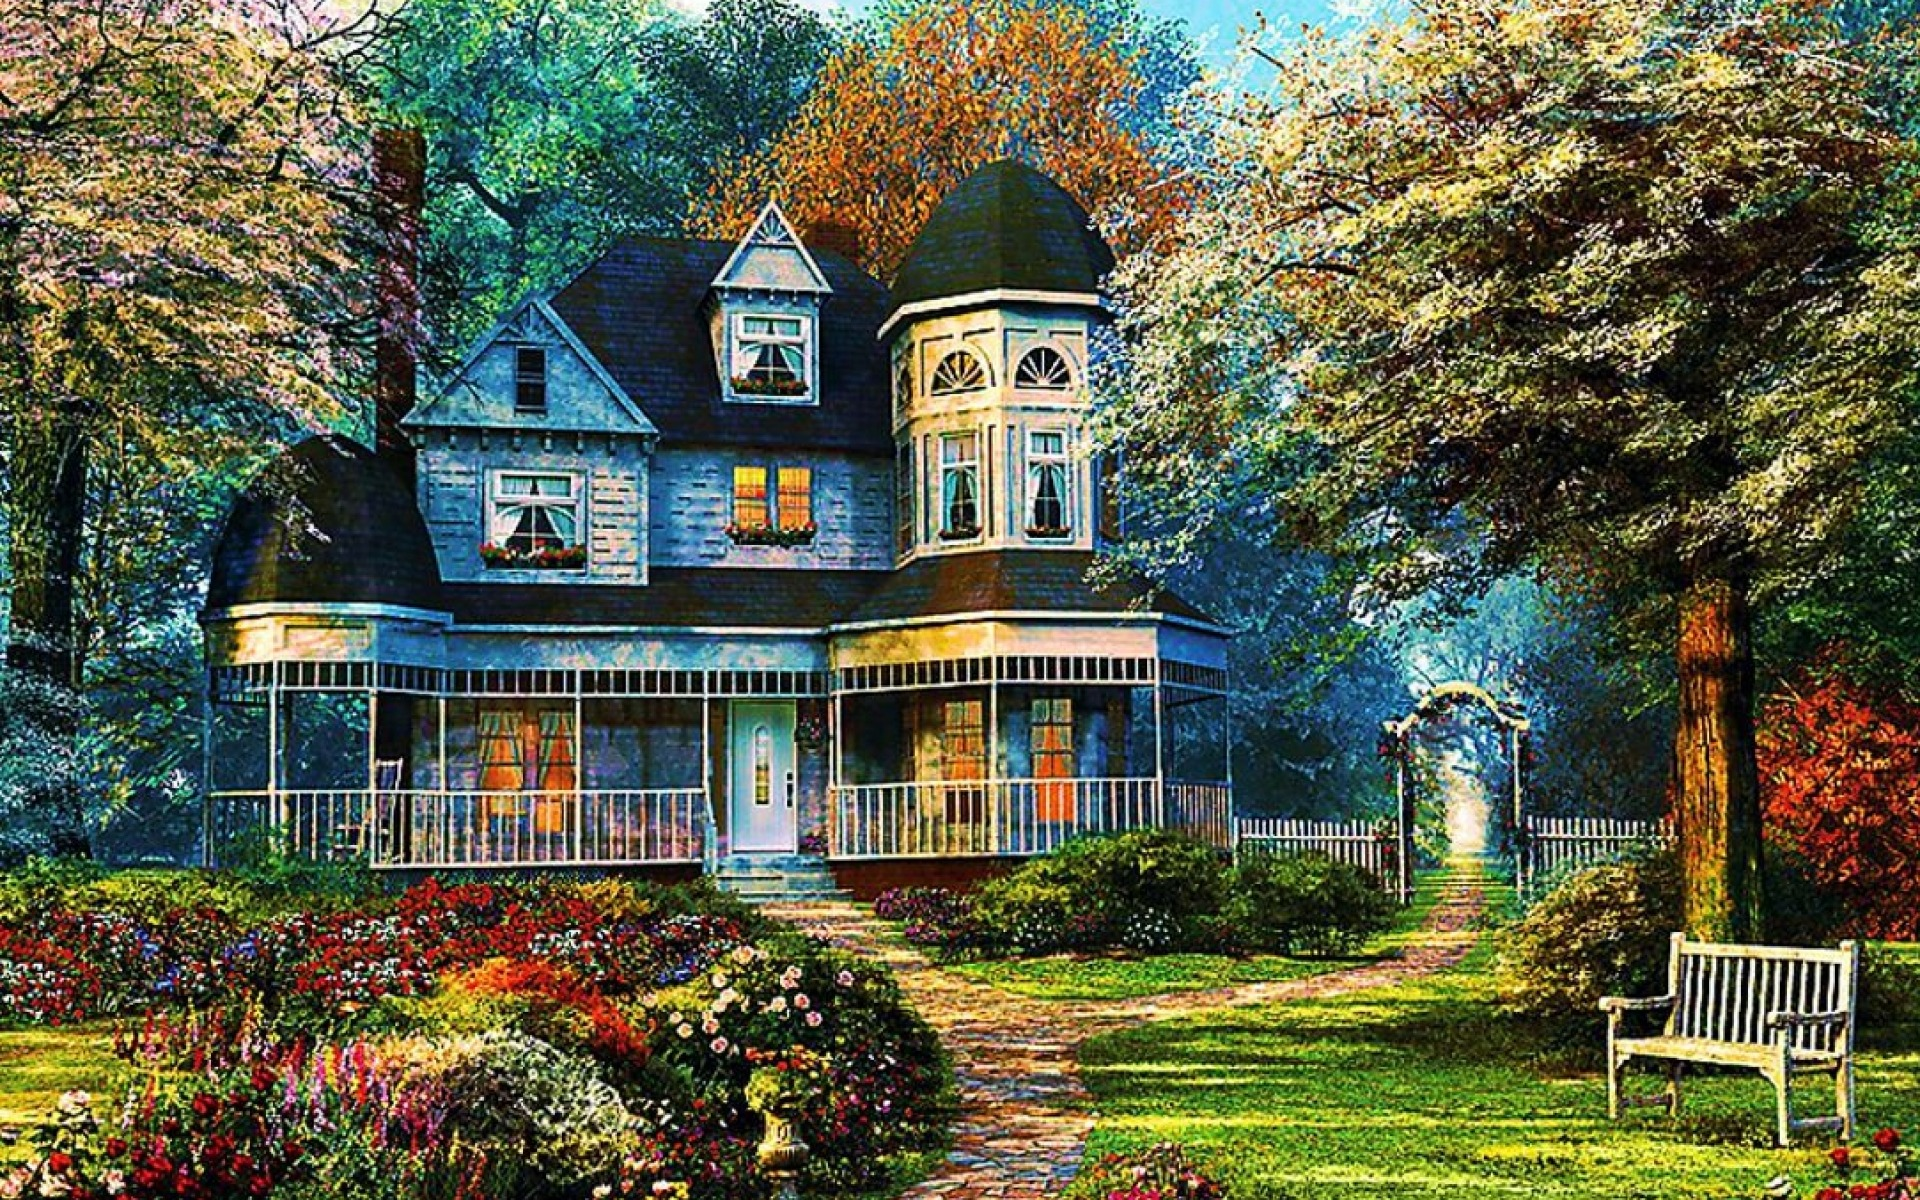 Idyllic Home Wallpapers Idyllic Home Stock Photos